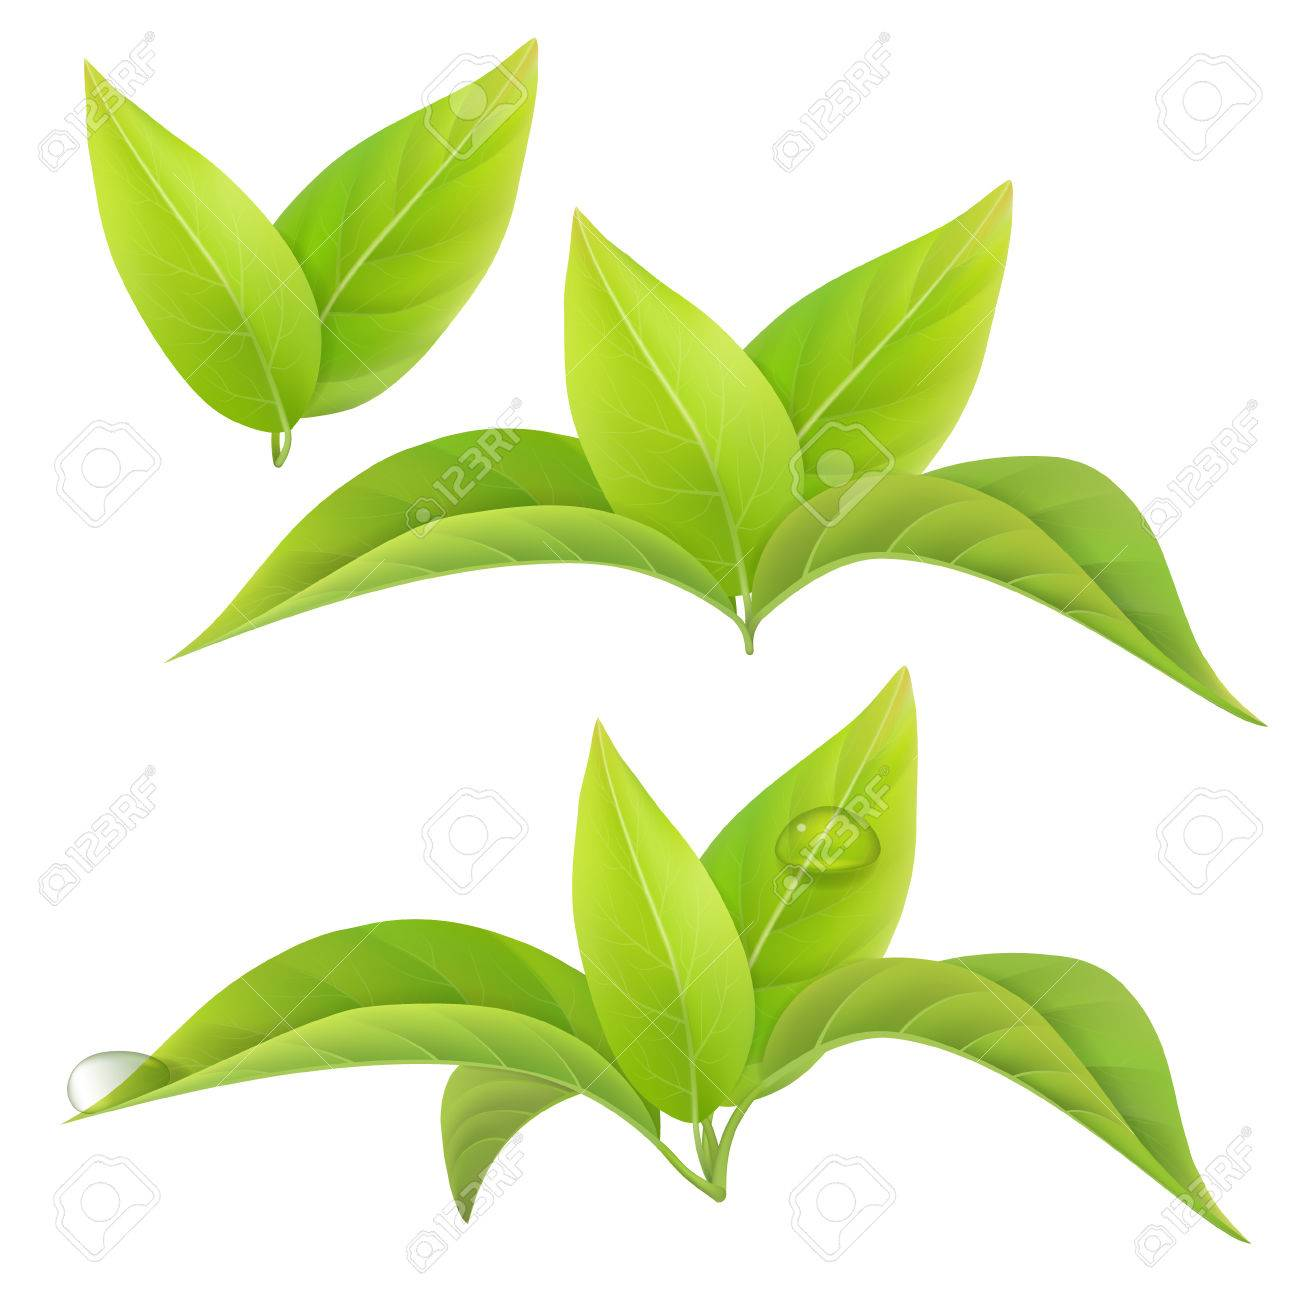 Set of green tea leaves isolated on a white background with drops of dew. floral elements. Stock Vector - 55050094